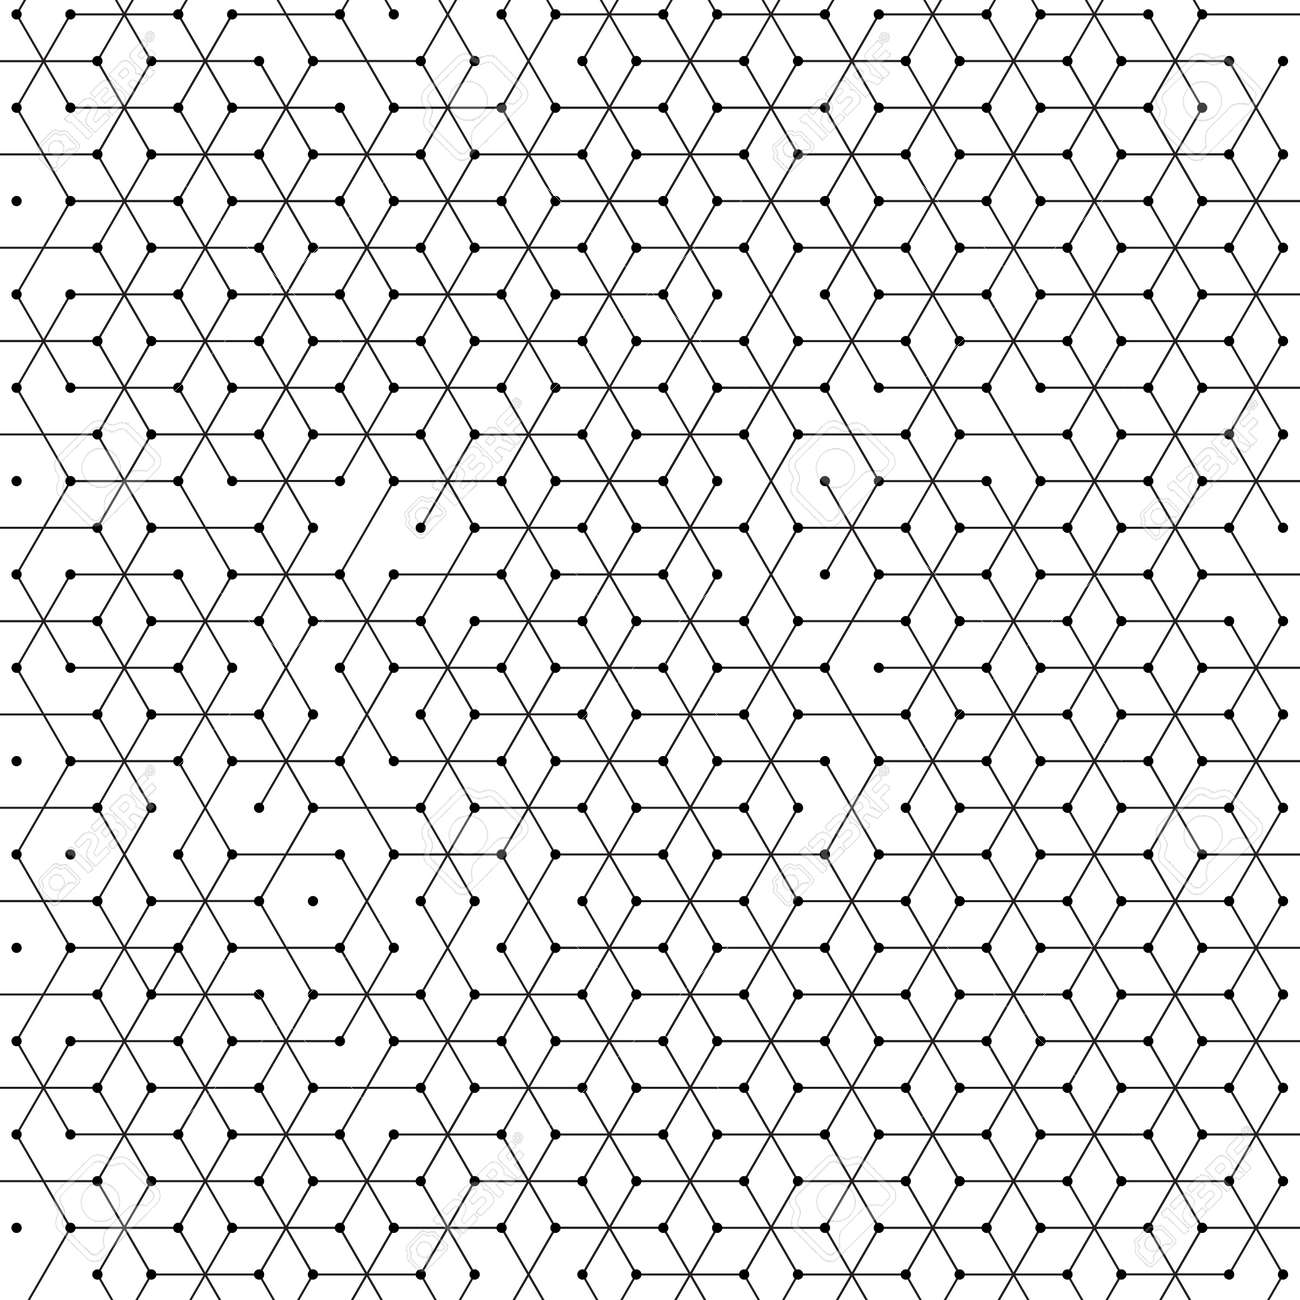 Hexagonal cells background of abstract hexagon geometric mesh pattern. Polygonal net structure of lines connection with dots - 68148423